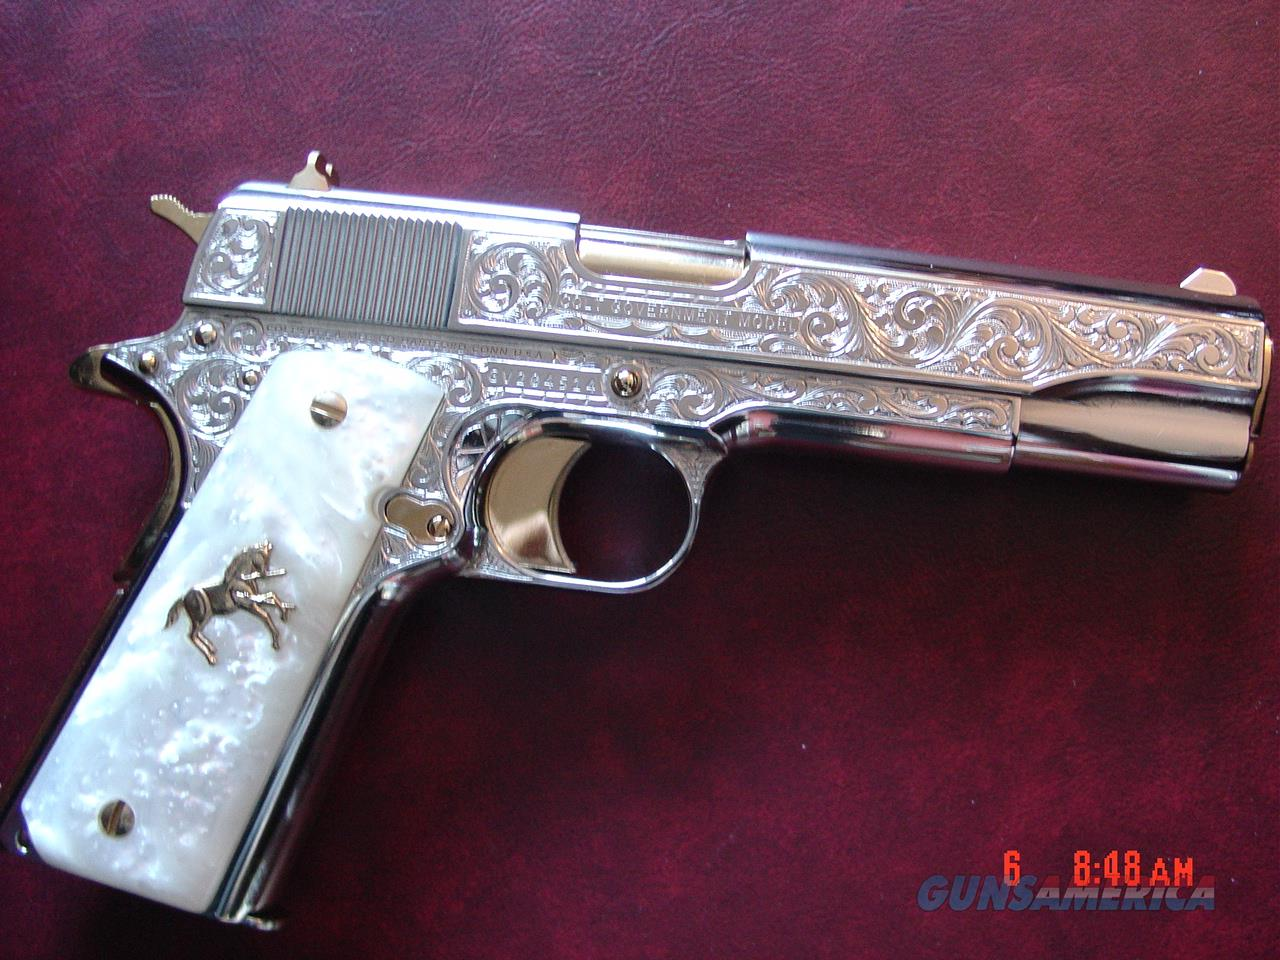 Colt Government 45,master engraved by S.Leis & refinished in bright nickel with 24K accents,Pearlite grips,never fired. a 1 of a kind work of art !!  Guns > Pistols > Colt Automatic Pistols (1911 & Var)